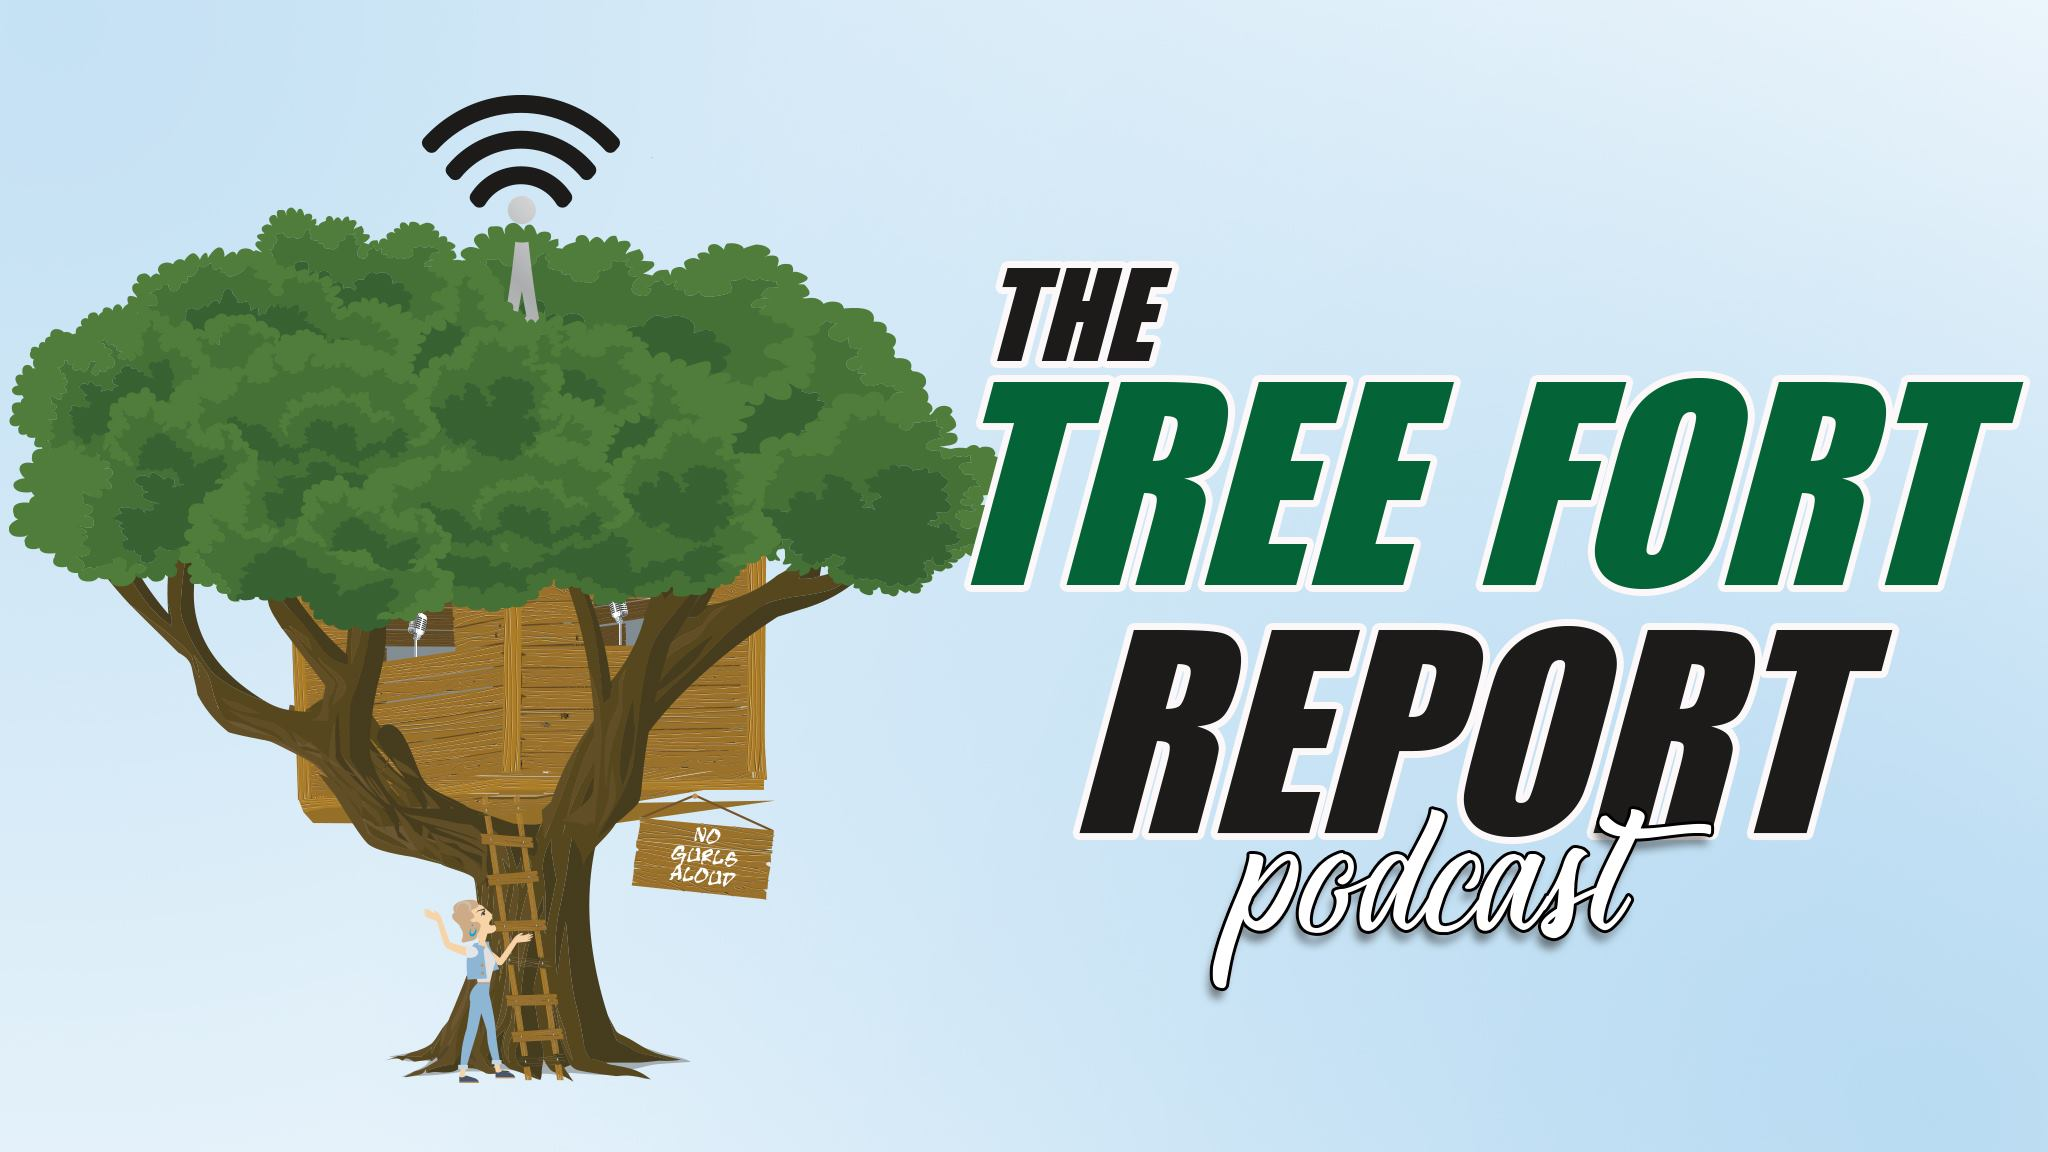 The Tree Fort Report